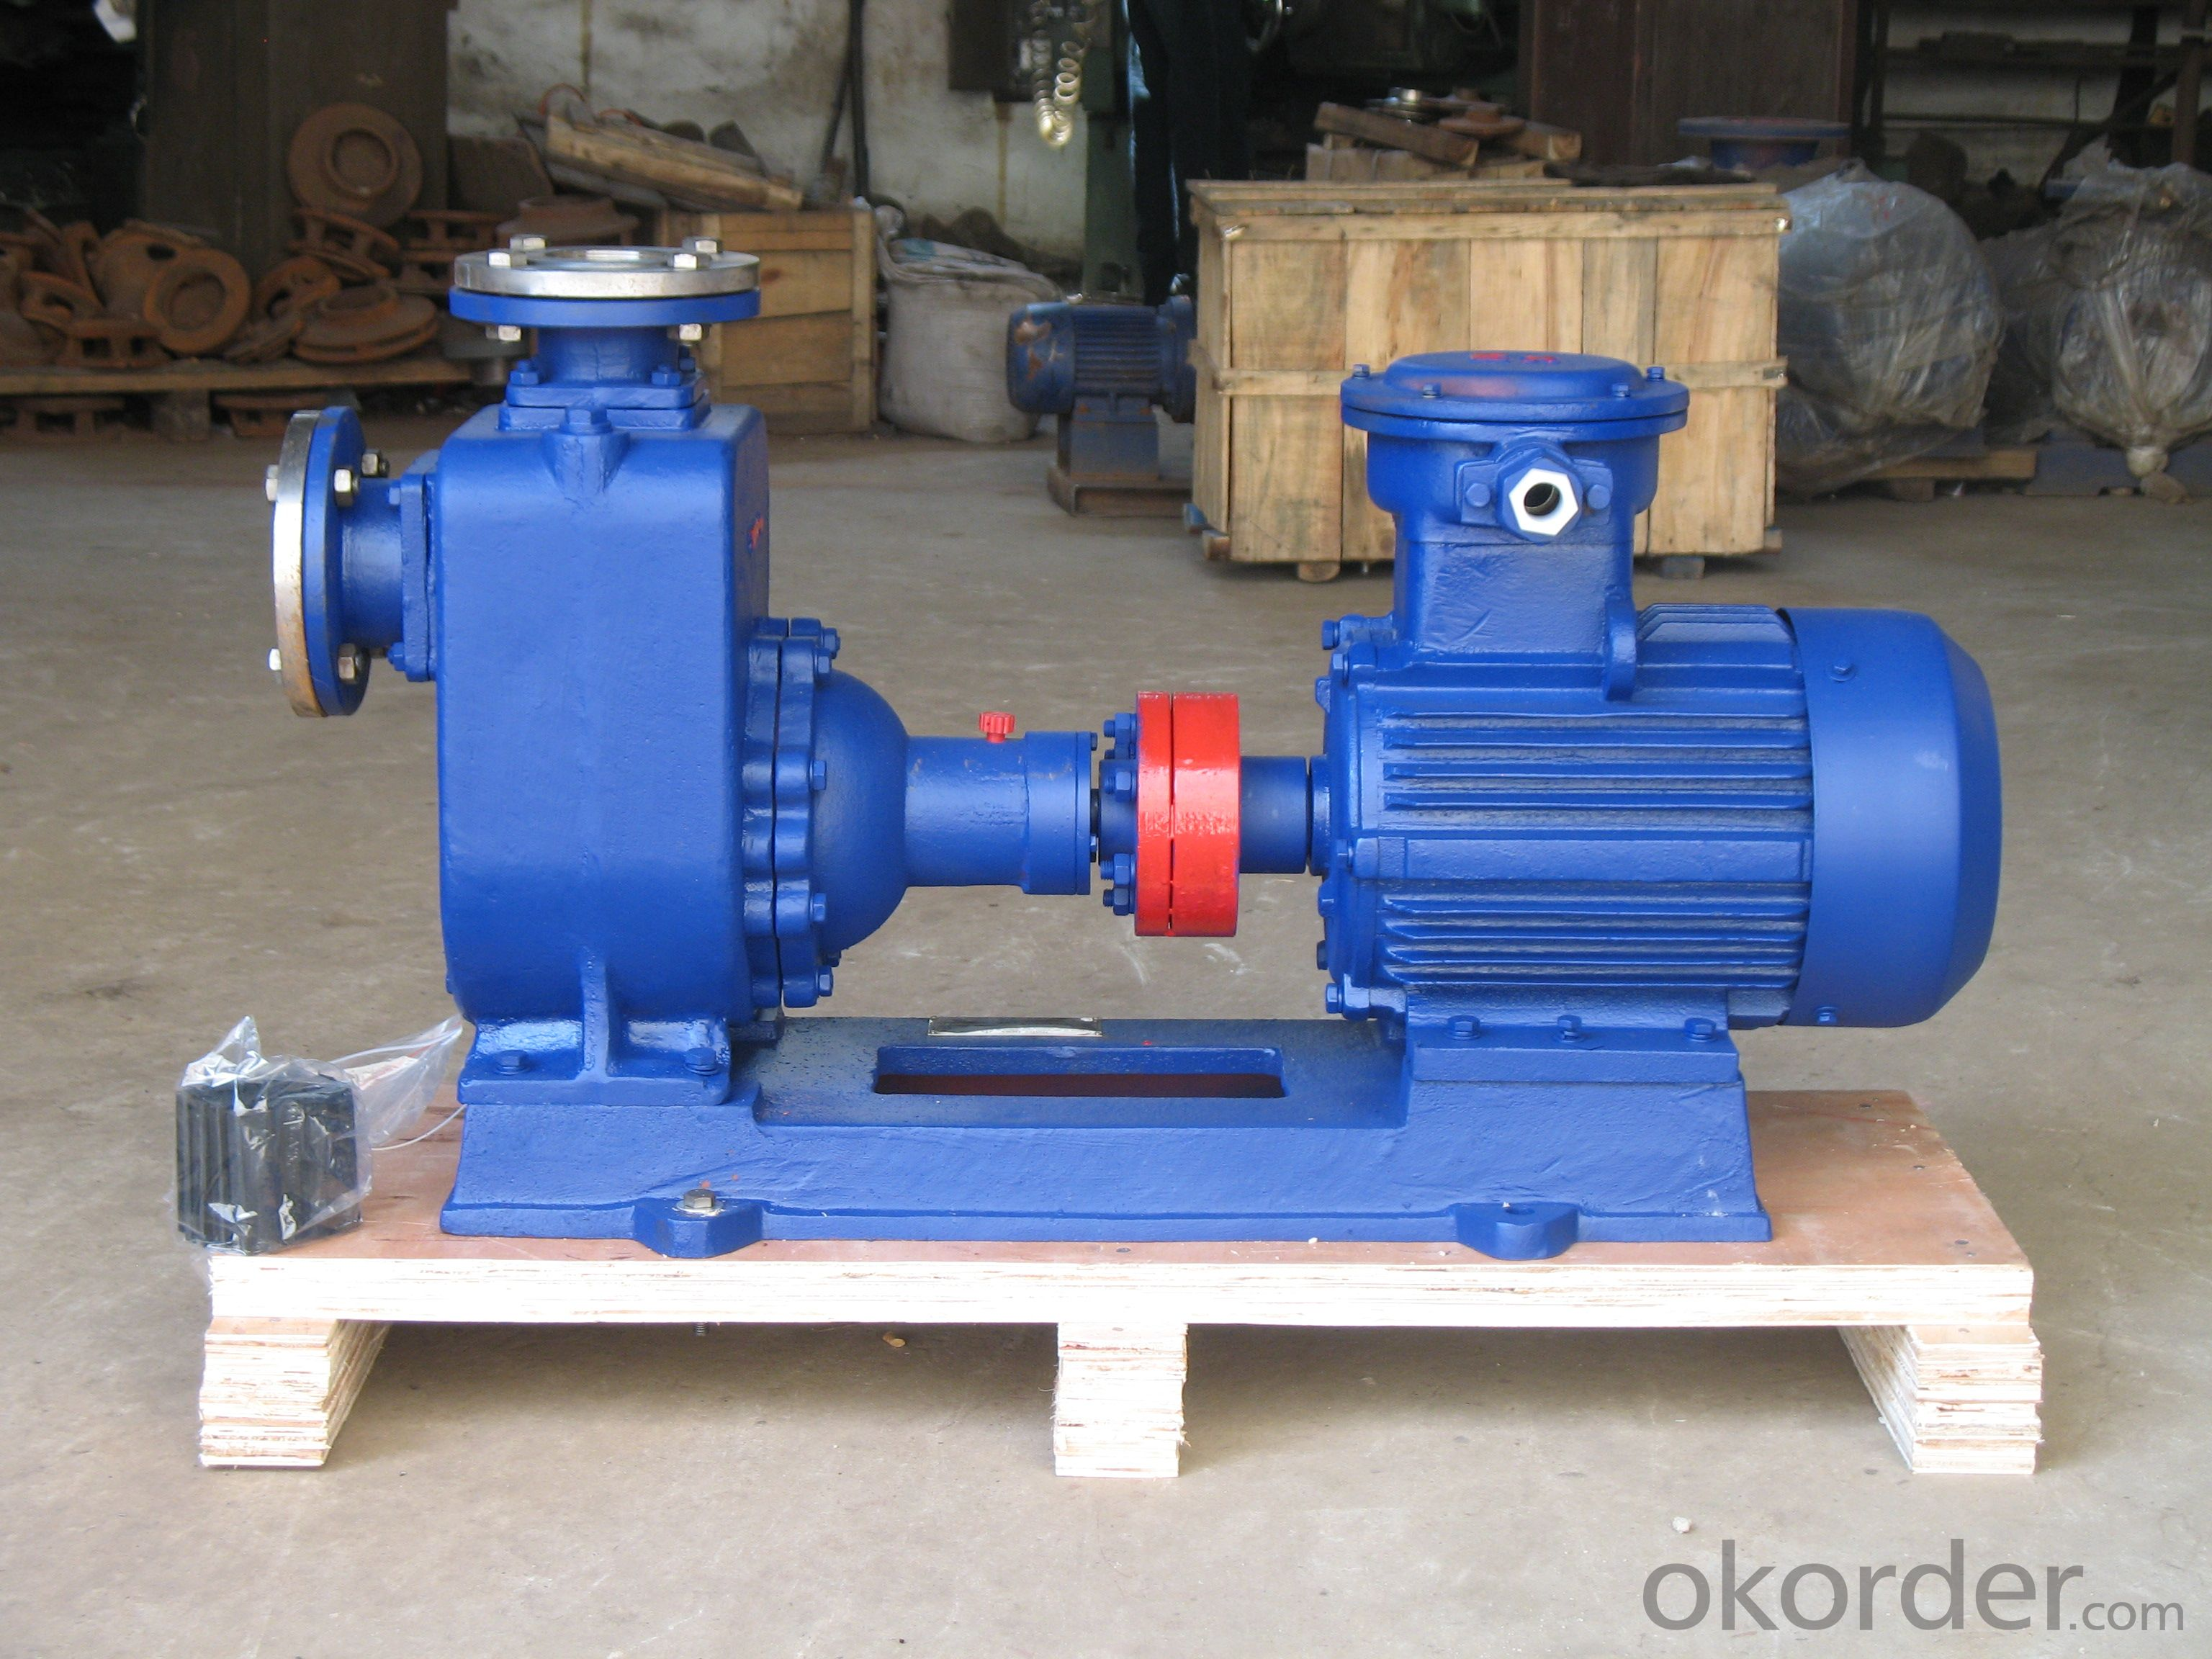 ZX Type self priming centrifugal cast iron material EX-Proof motor pump